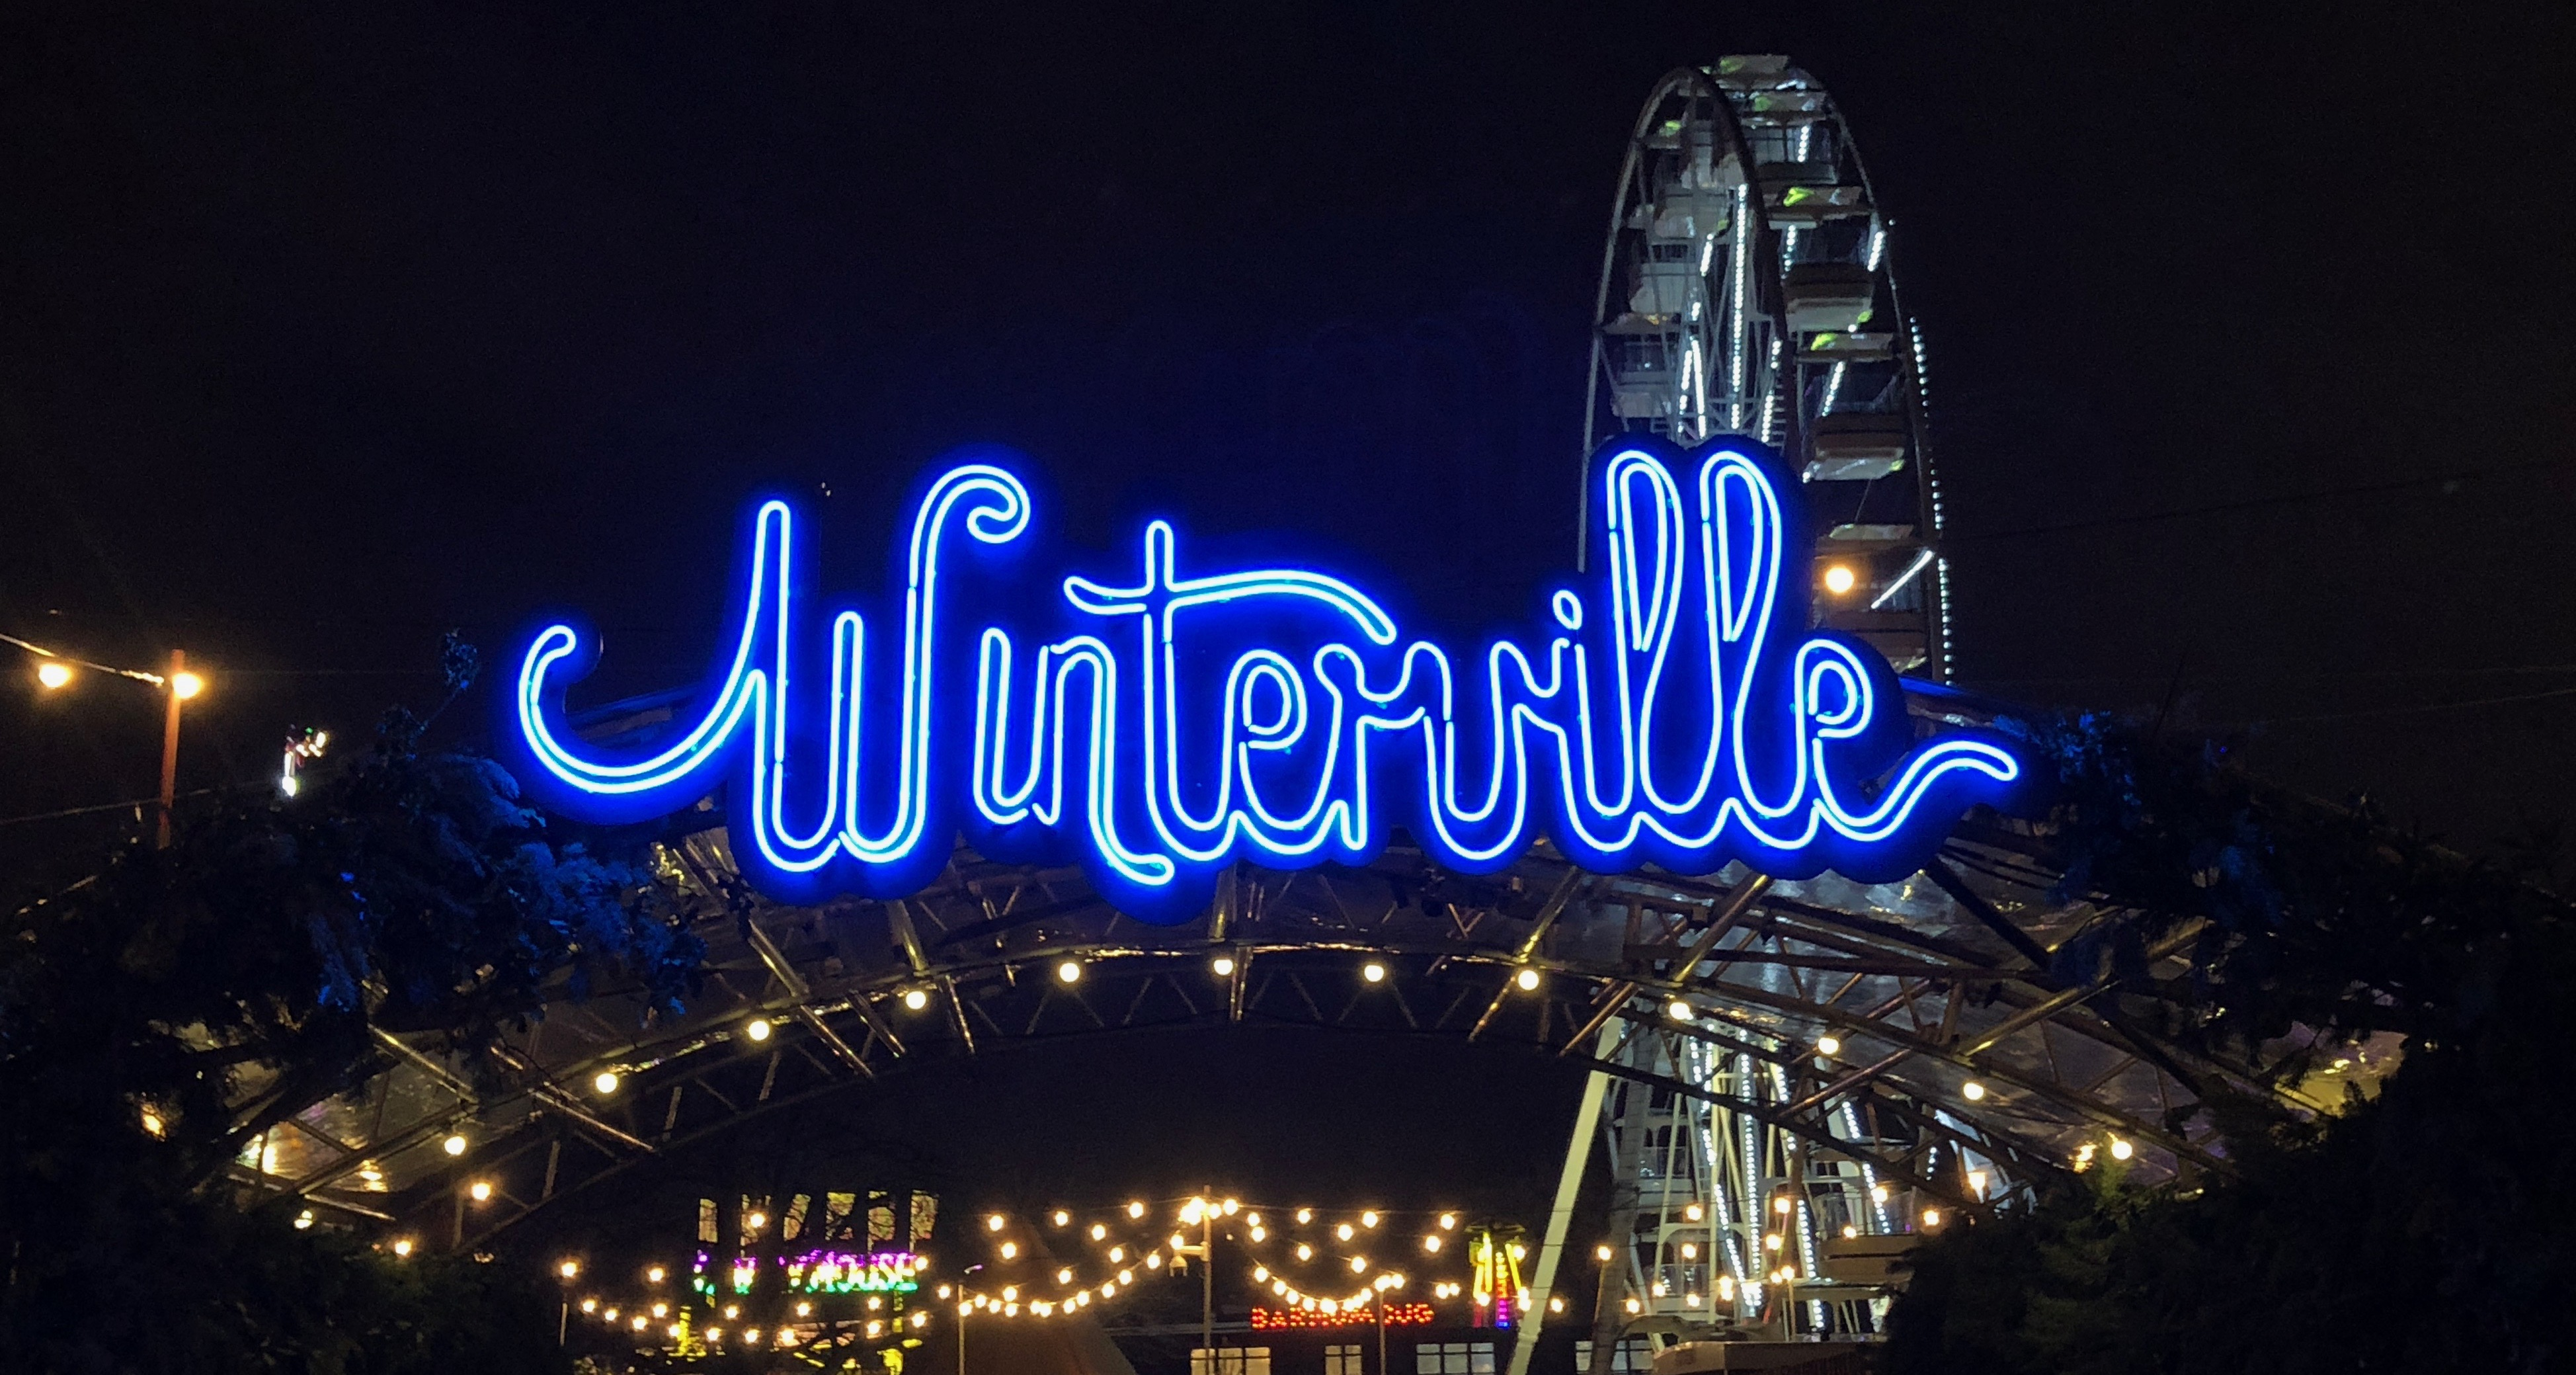 The neon Winterville sign at the entrance to the festival with the big wheel in the background